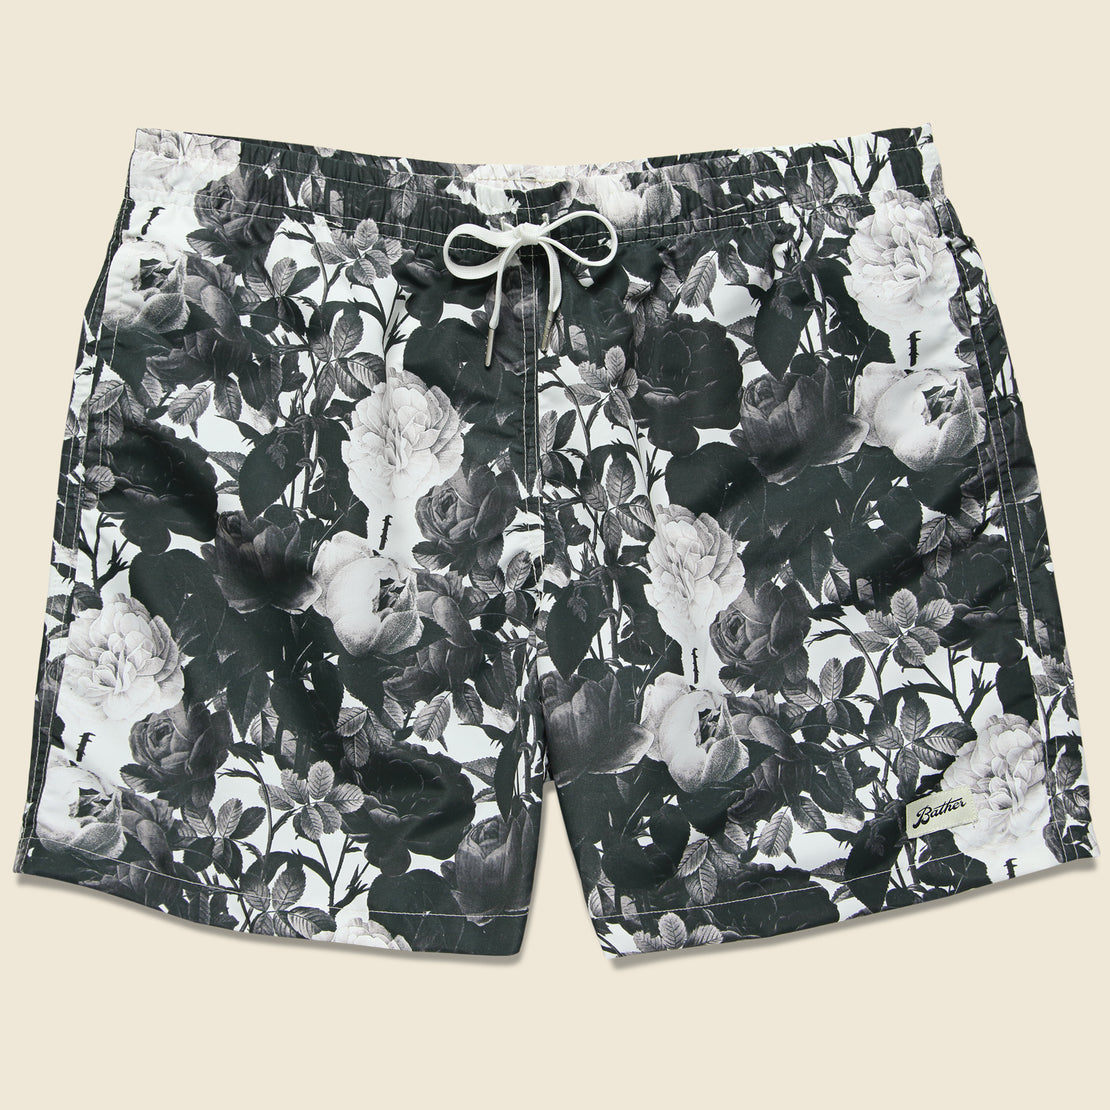 Bather Trunk Co. Black Roses Swim Trunk -  Black/White